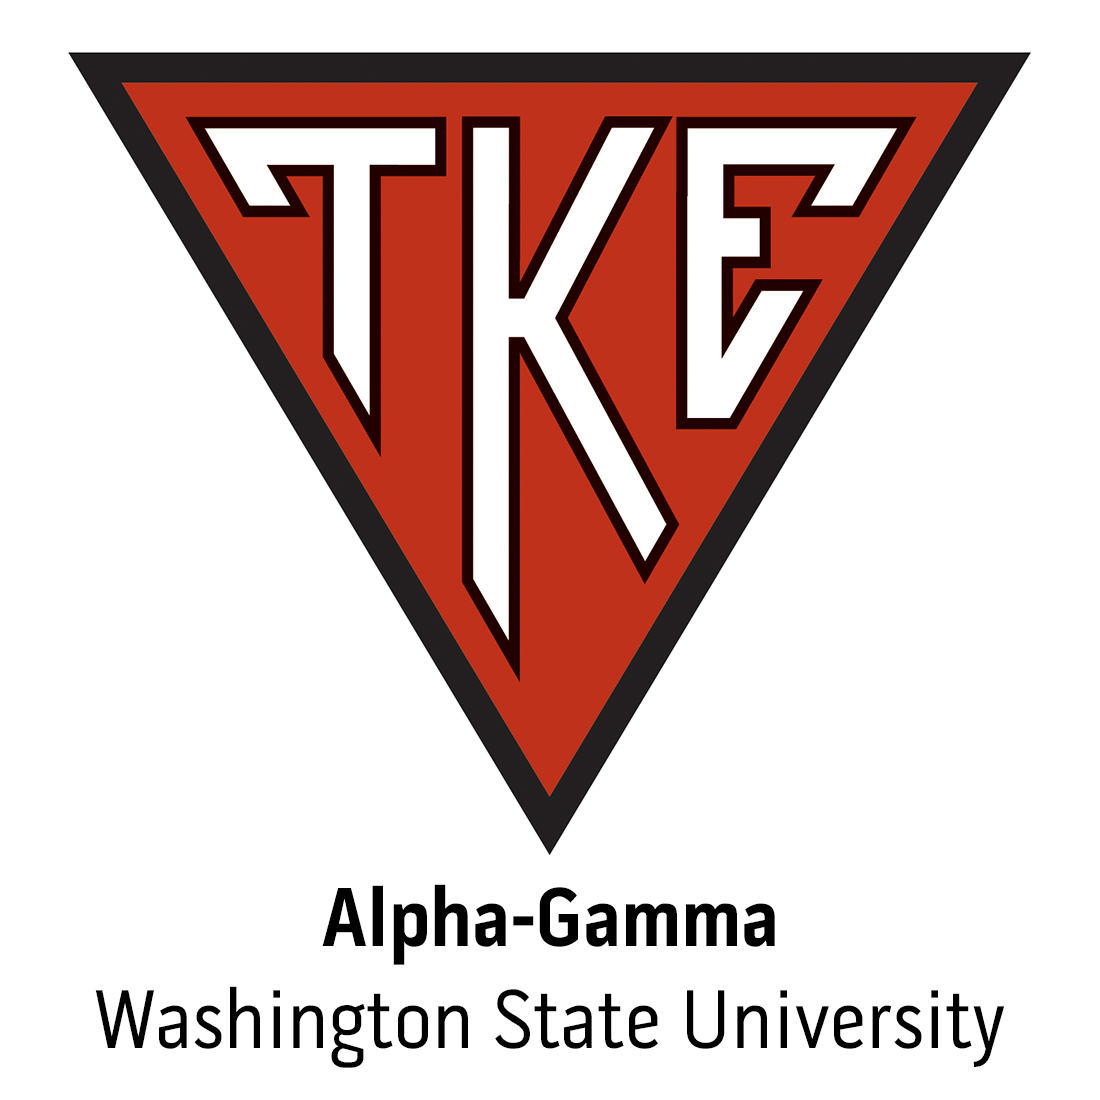 Alpha-Gamma Chapter at Washington State University